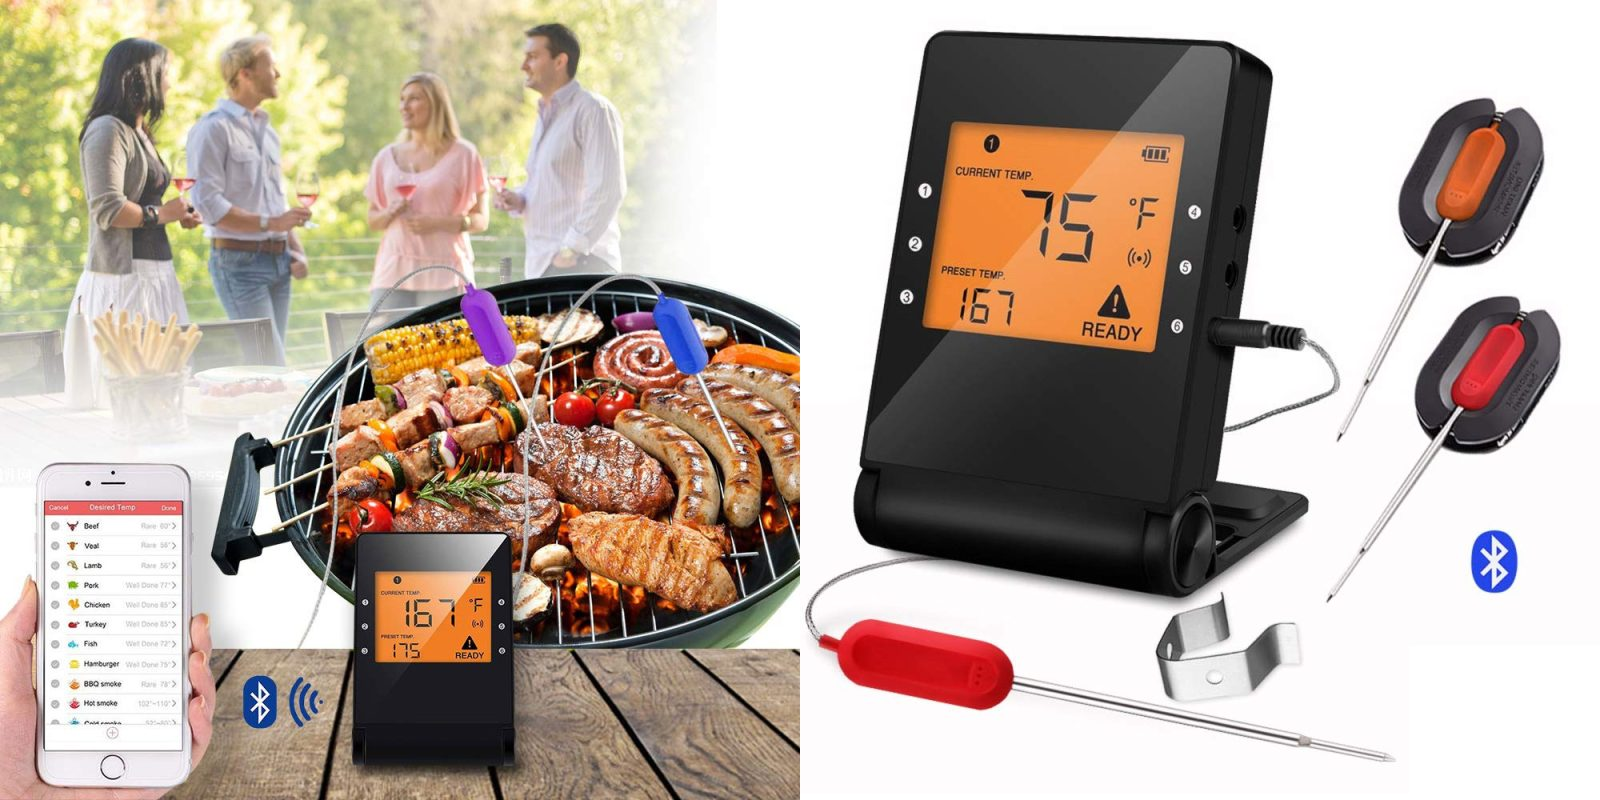 This $30 Bluetooth meat thermometer includes two probes + works w/ iPhone